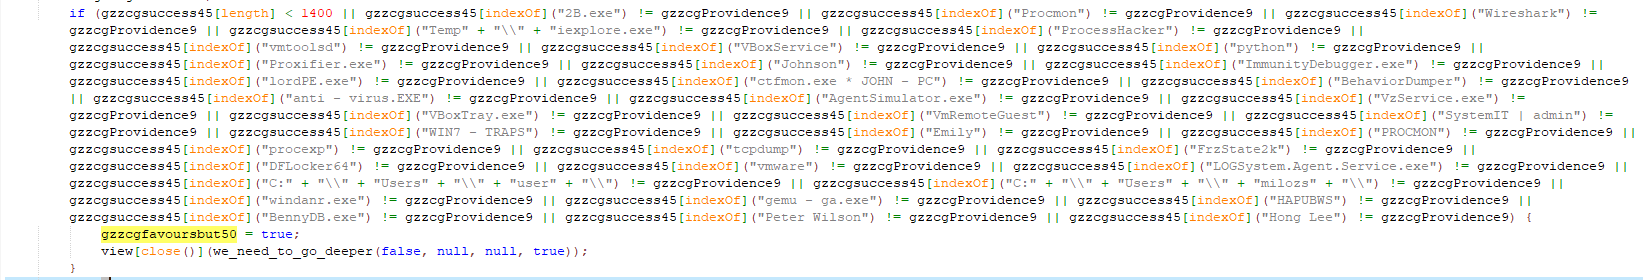 Figure 5. A snippet of checked processes and usernames